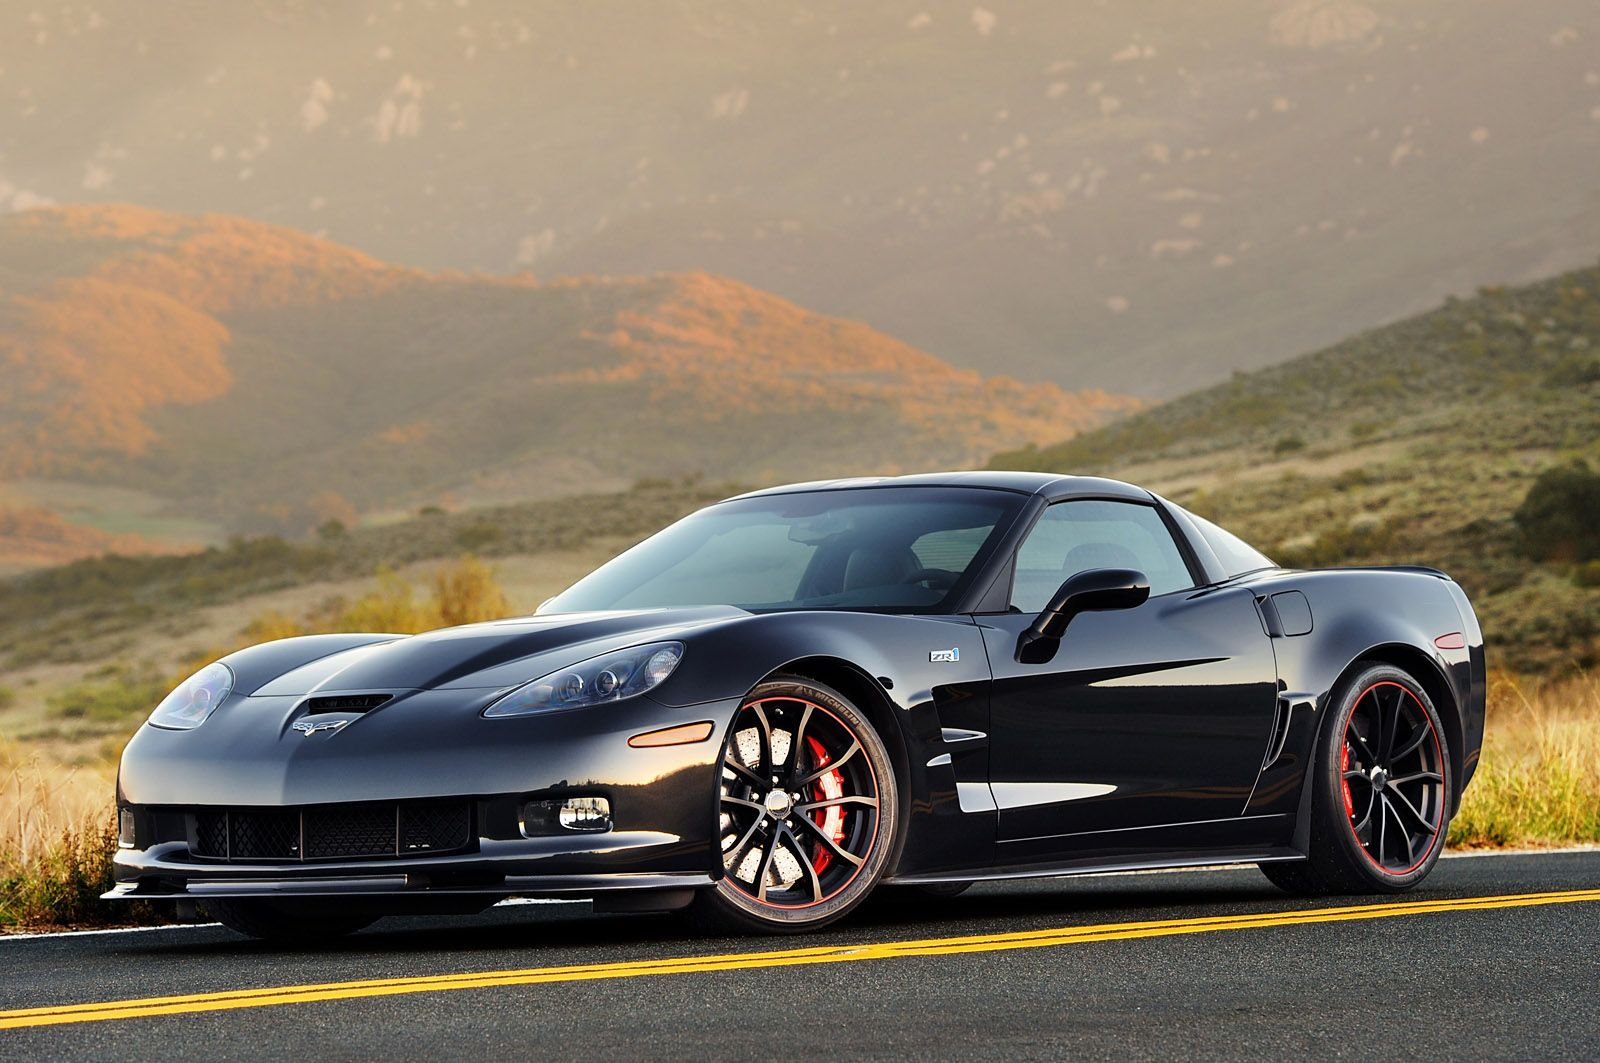 Chevrolet Corvette Zr1 Wallpaper Wallpapers Hd Wallpaper High Corvette Zr1 Chevrolet Corvette Corvette